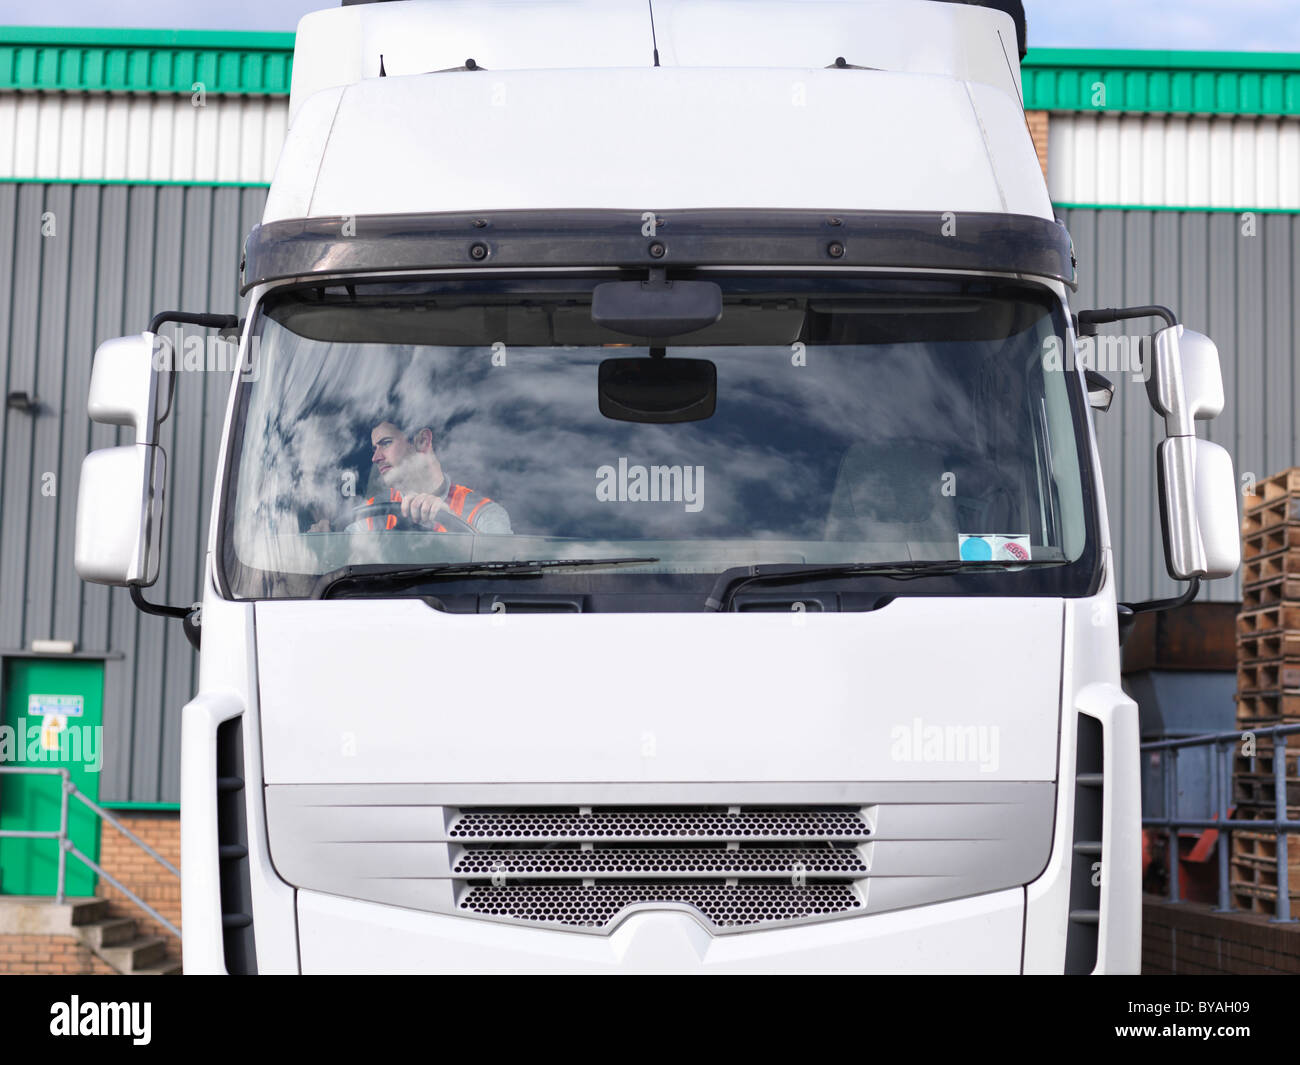 Truck driver in truck - Stock Image